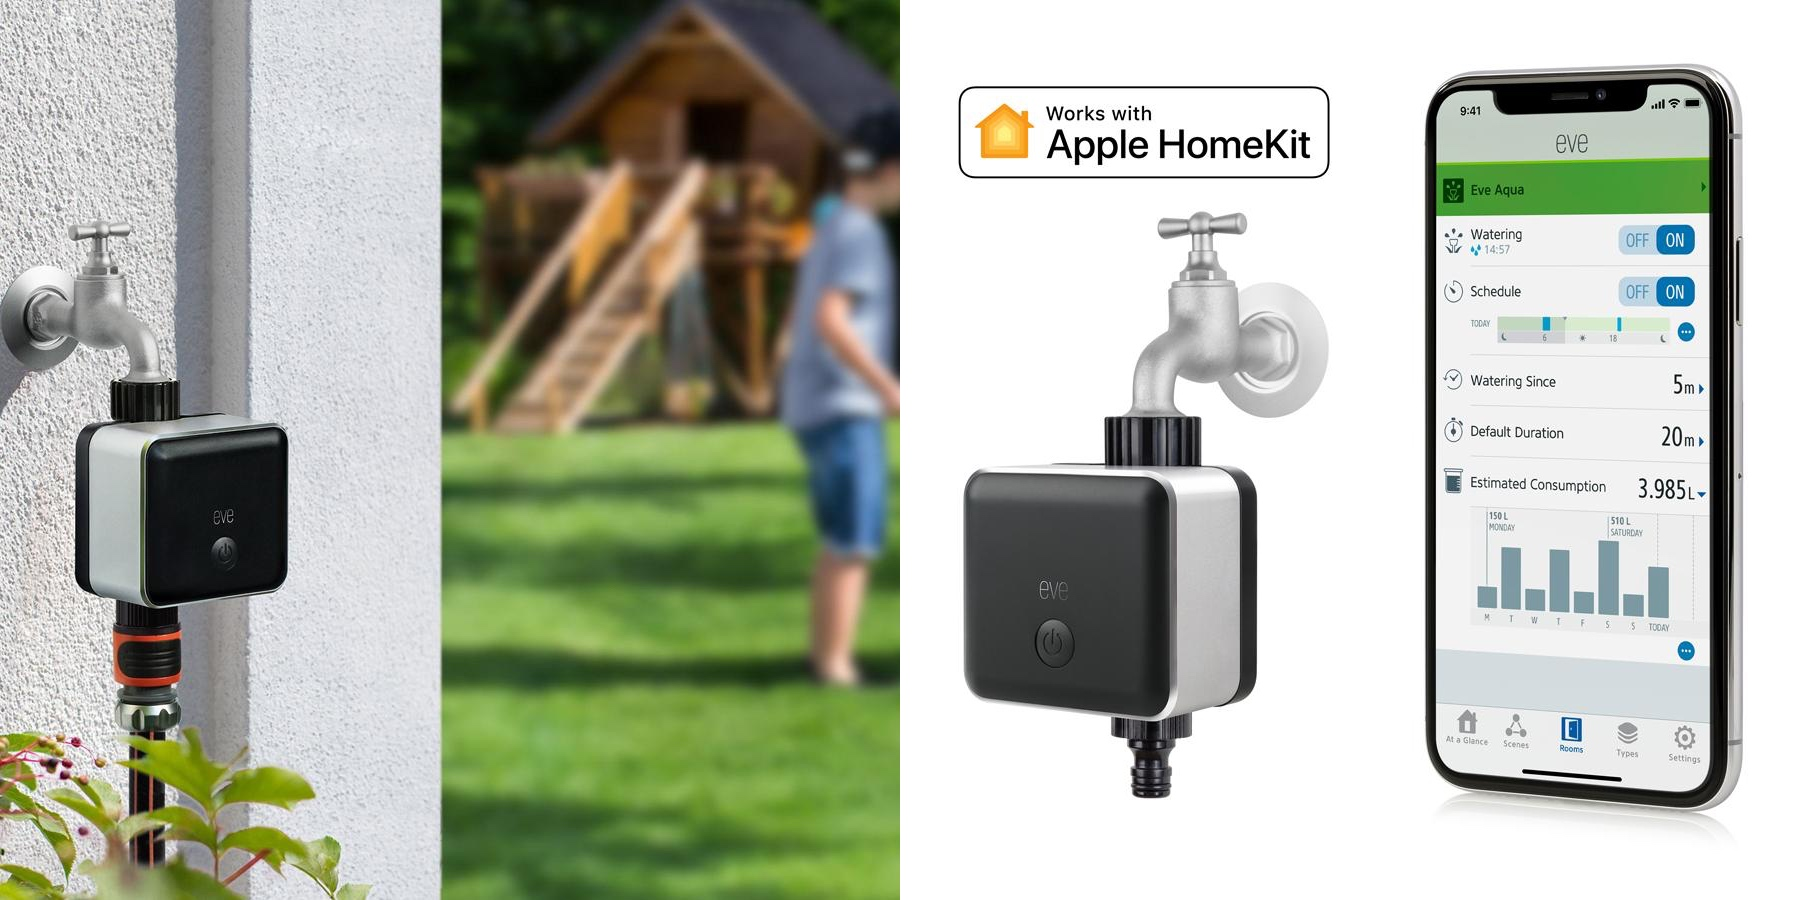 Elgato Launches Eve Aqua To Let You Control Your Garden Hose And Sprinklers With Homekit 9to5mac